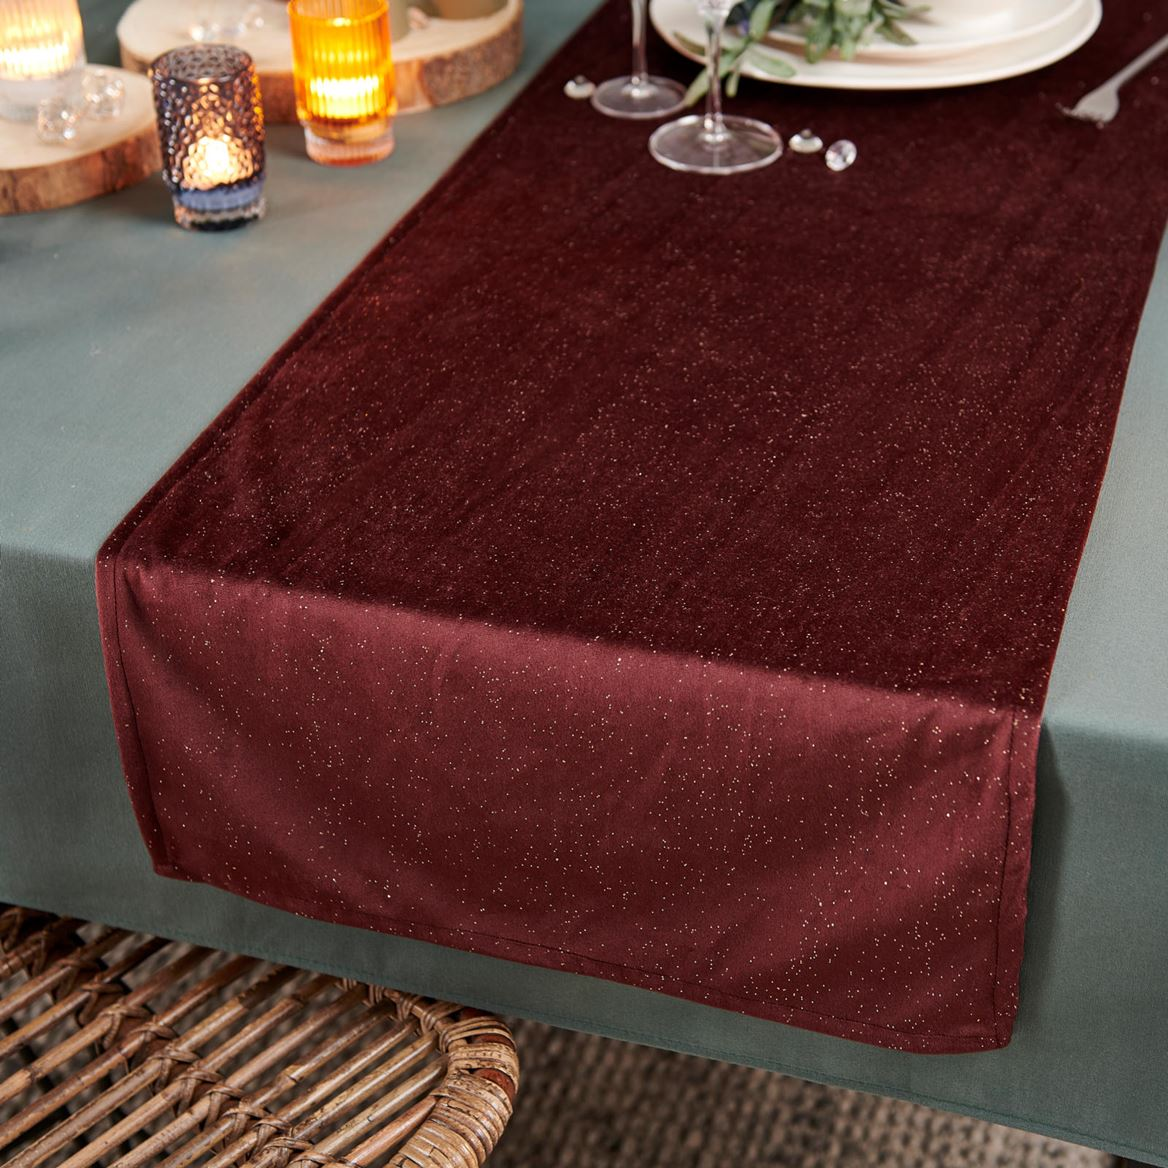 BURGUNDY Chemin de table rouge foncé Larg. 45 x Long. 140 cm_burgundy-chemin-de-table-rouge-foncé-larg--45-x-long--140-cm